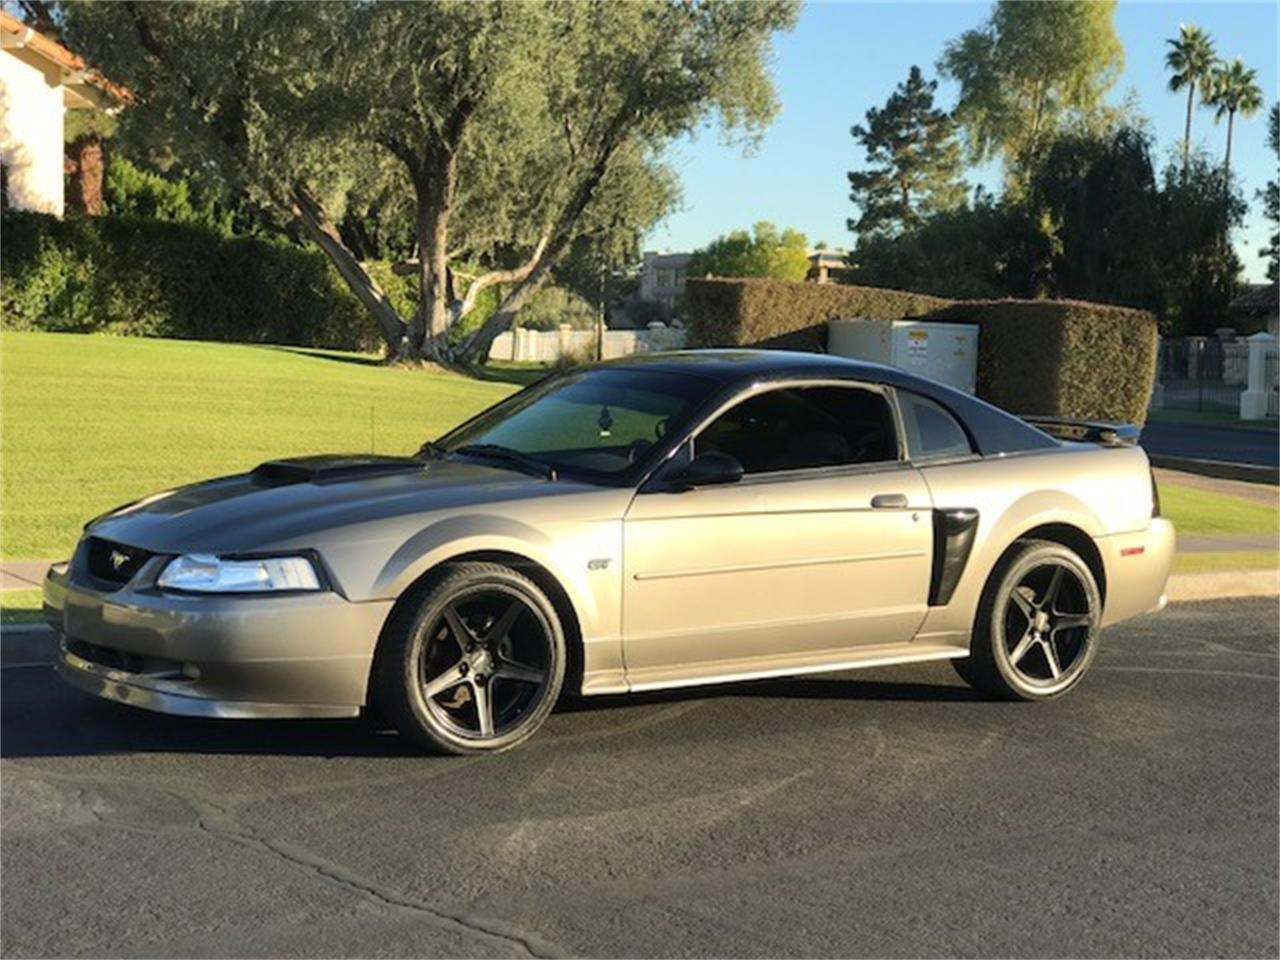 2002 Ford Mustang GT for Sale   ClassicCars.com   CC-1058155